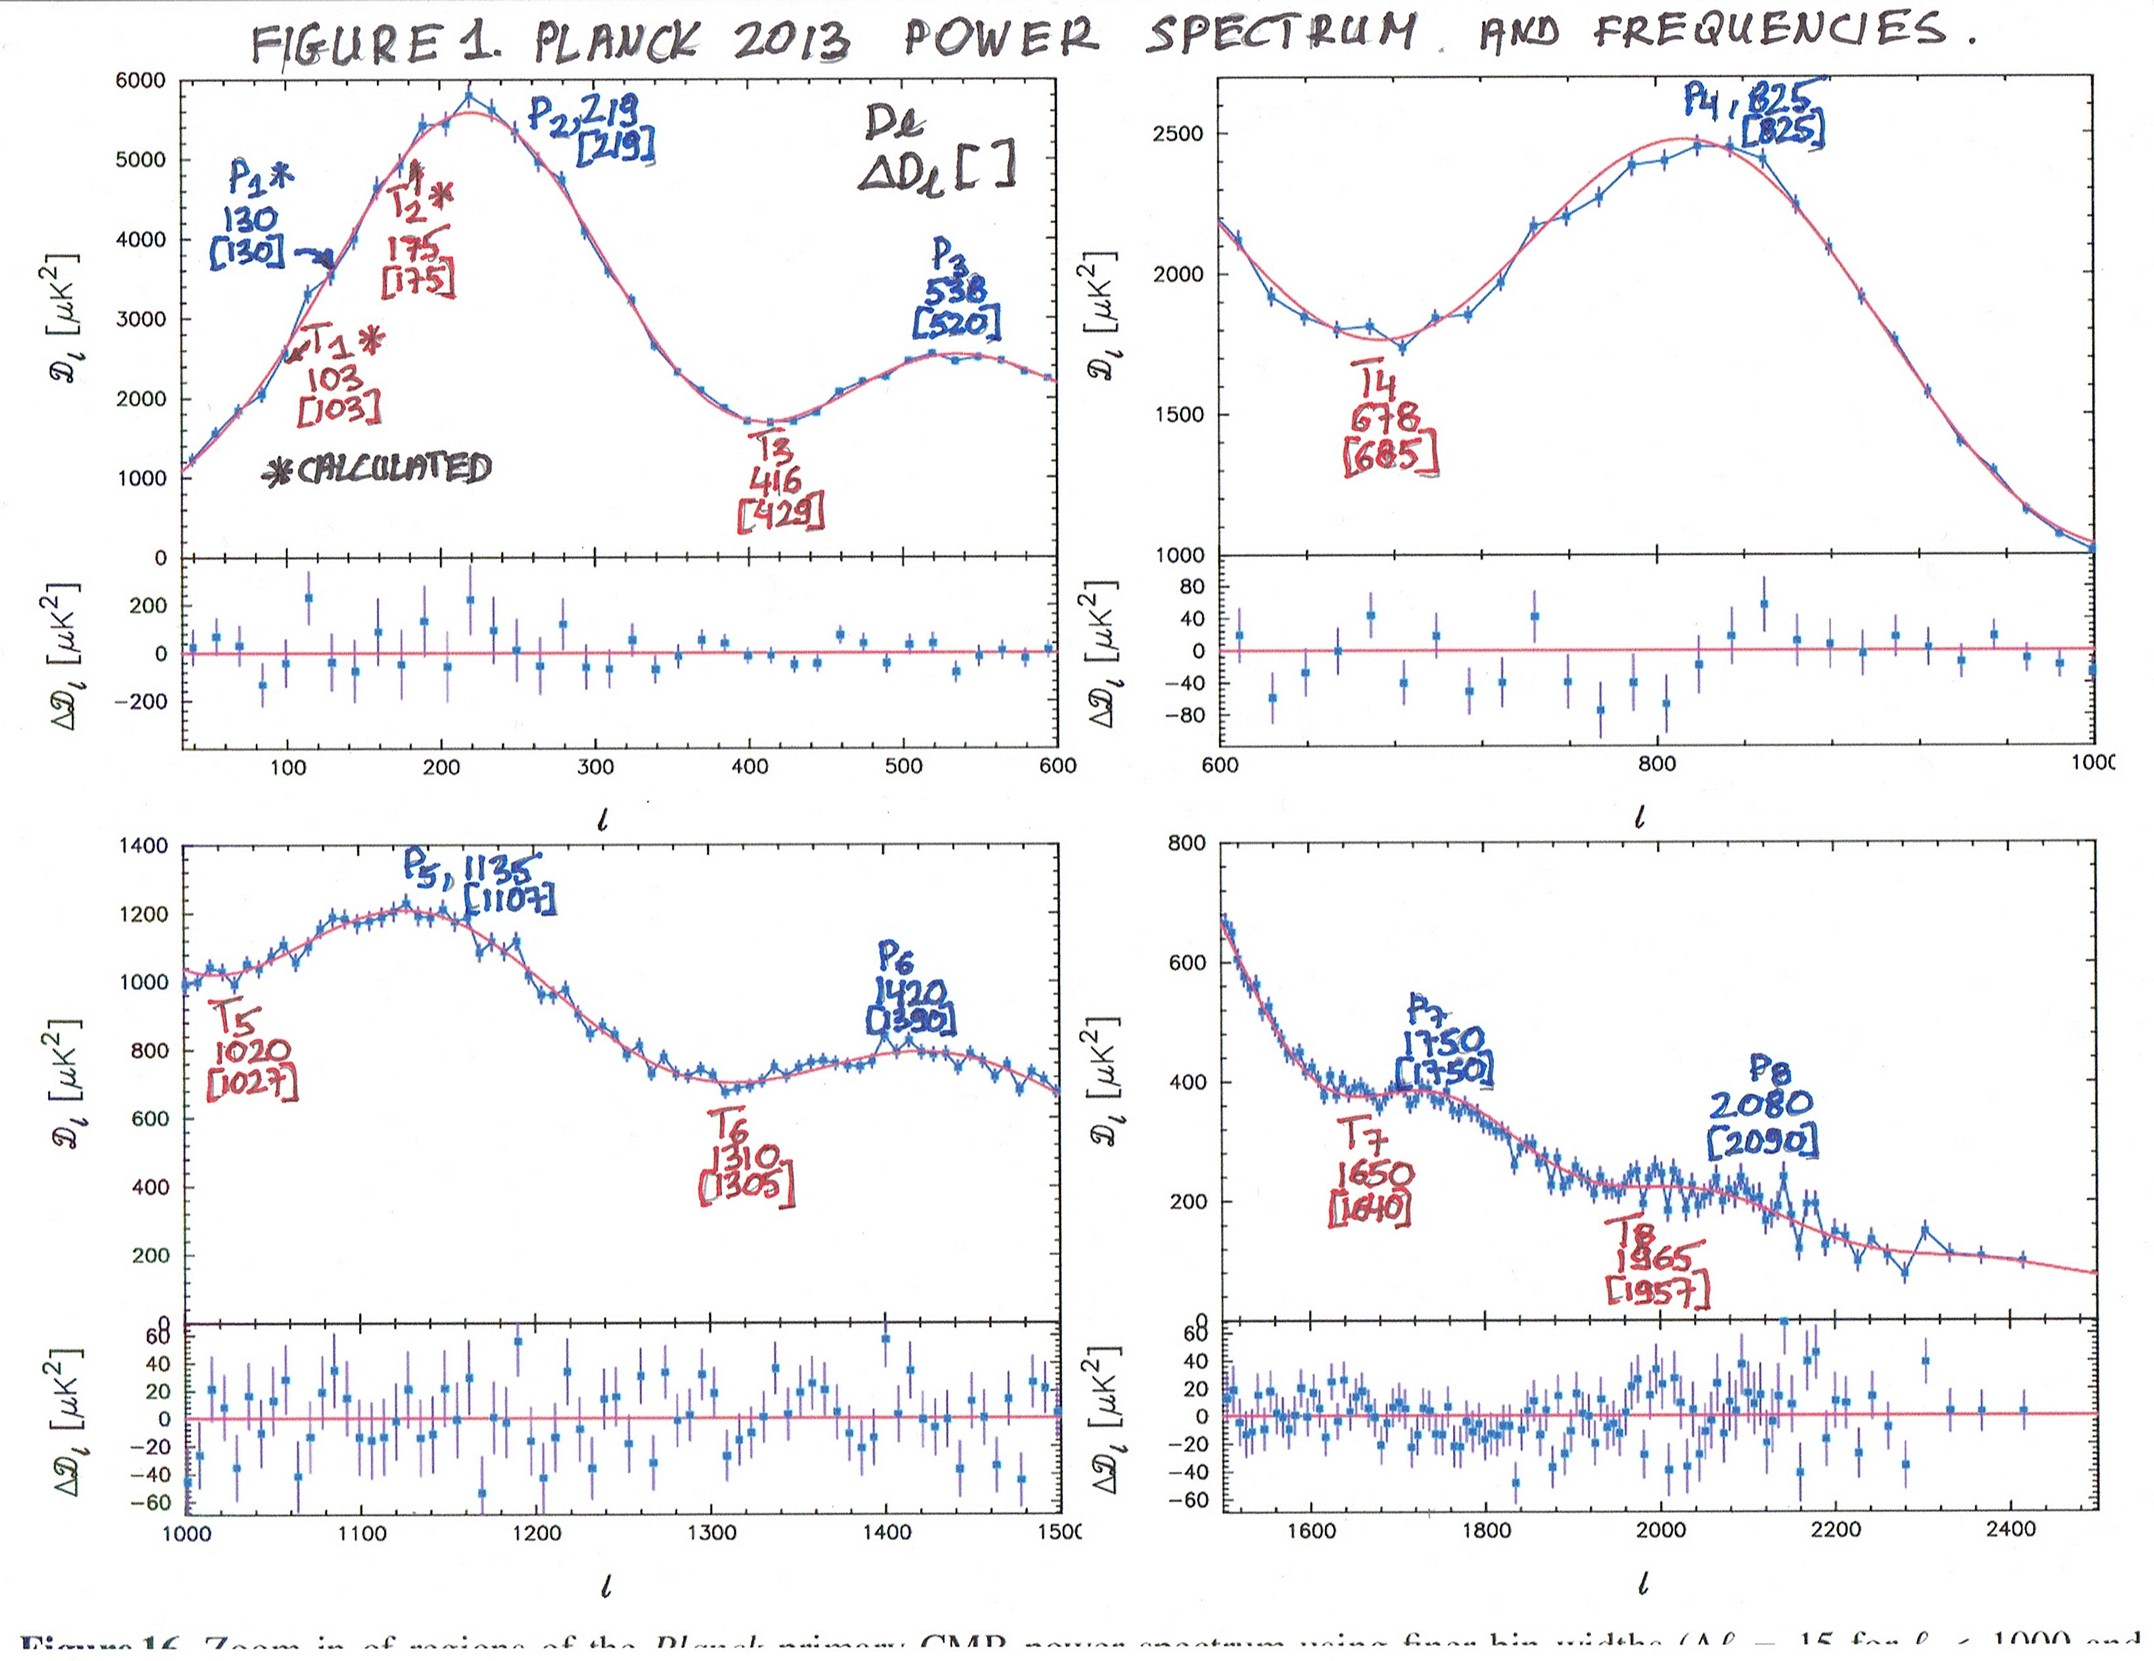 1 FIGURE 1 PLANCK 2013 POWER SPECTRUM AND FREQUENCIES